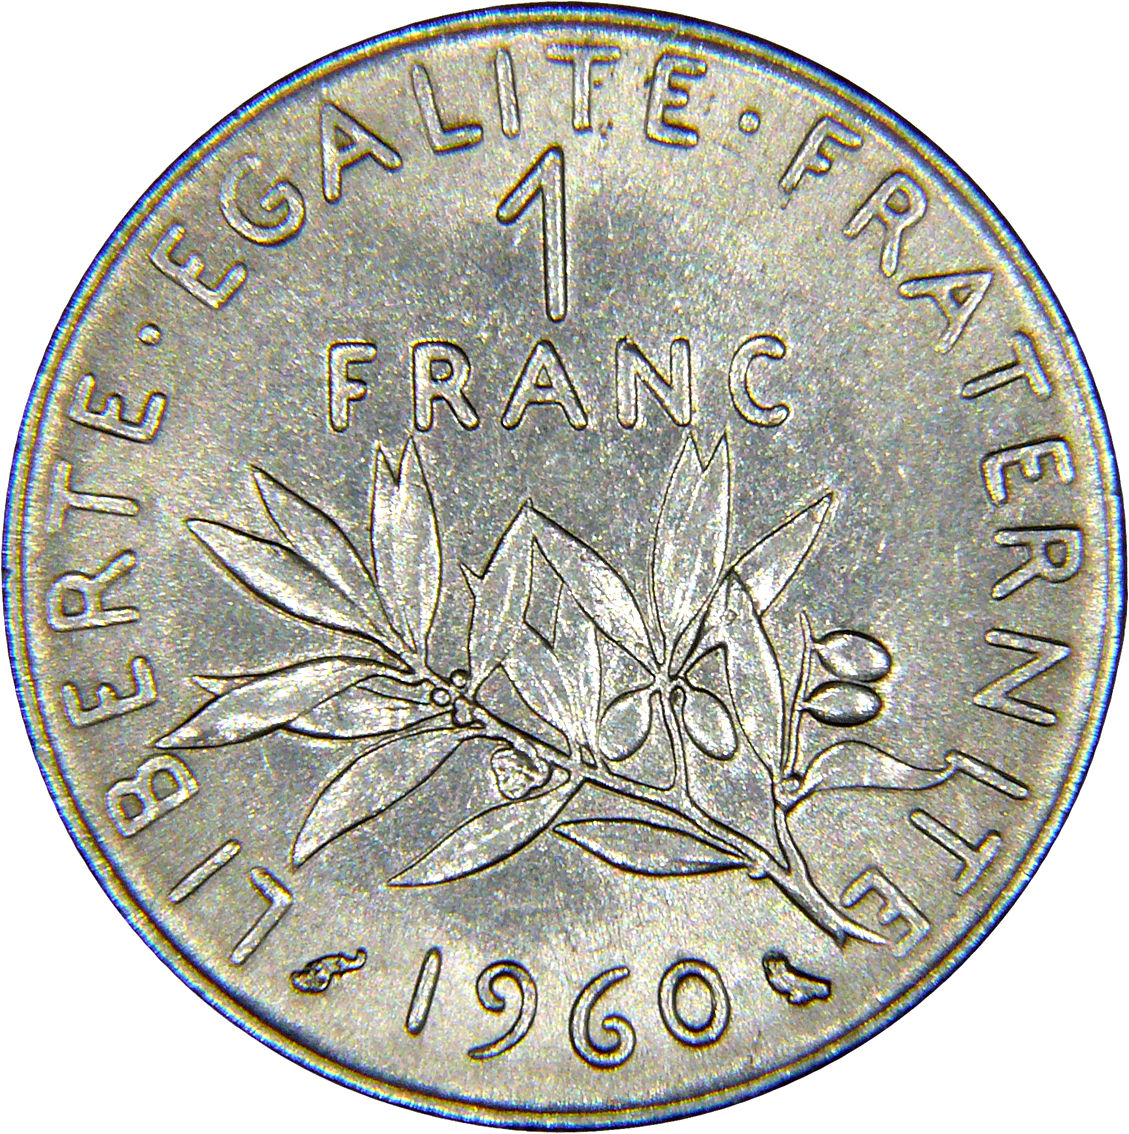 2 French coins need help for ID – Numista